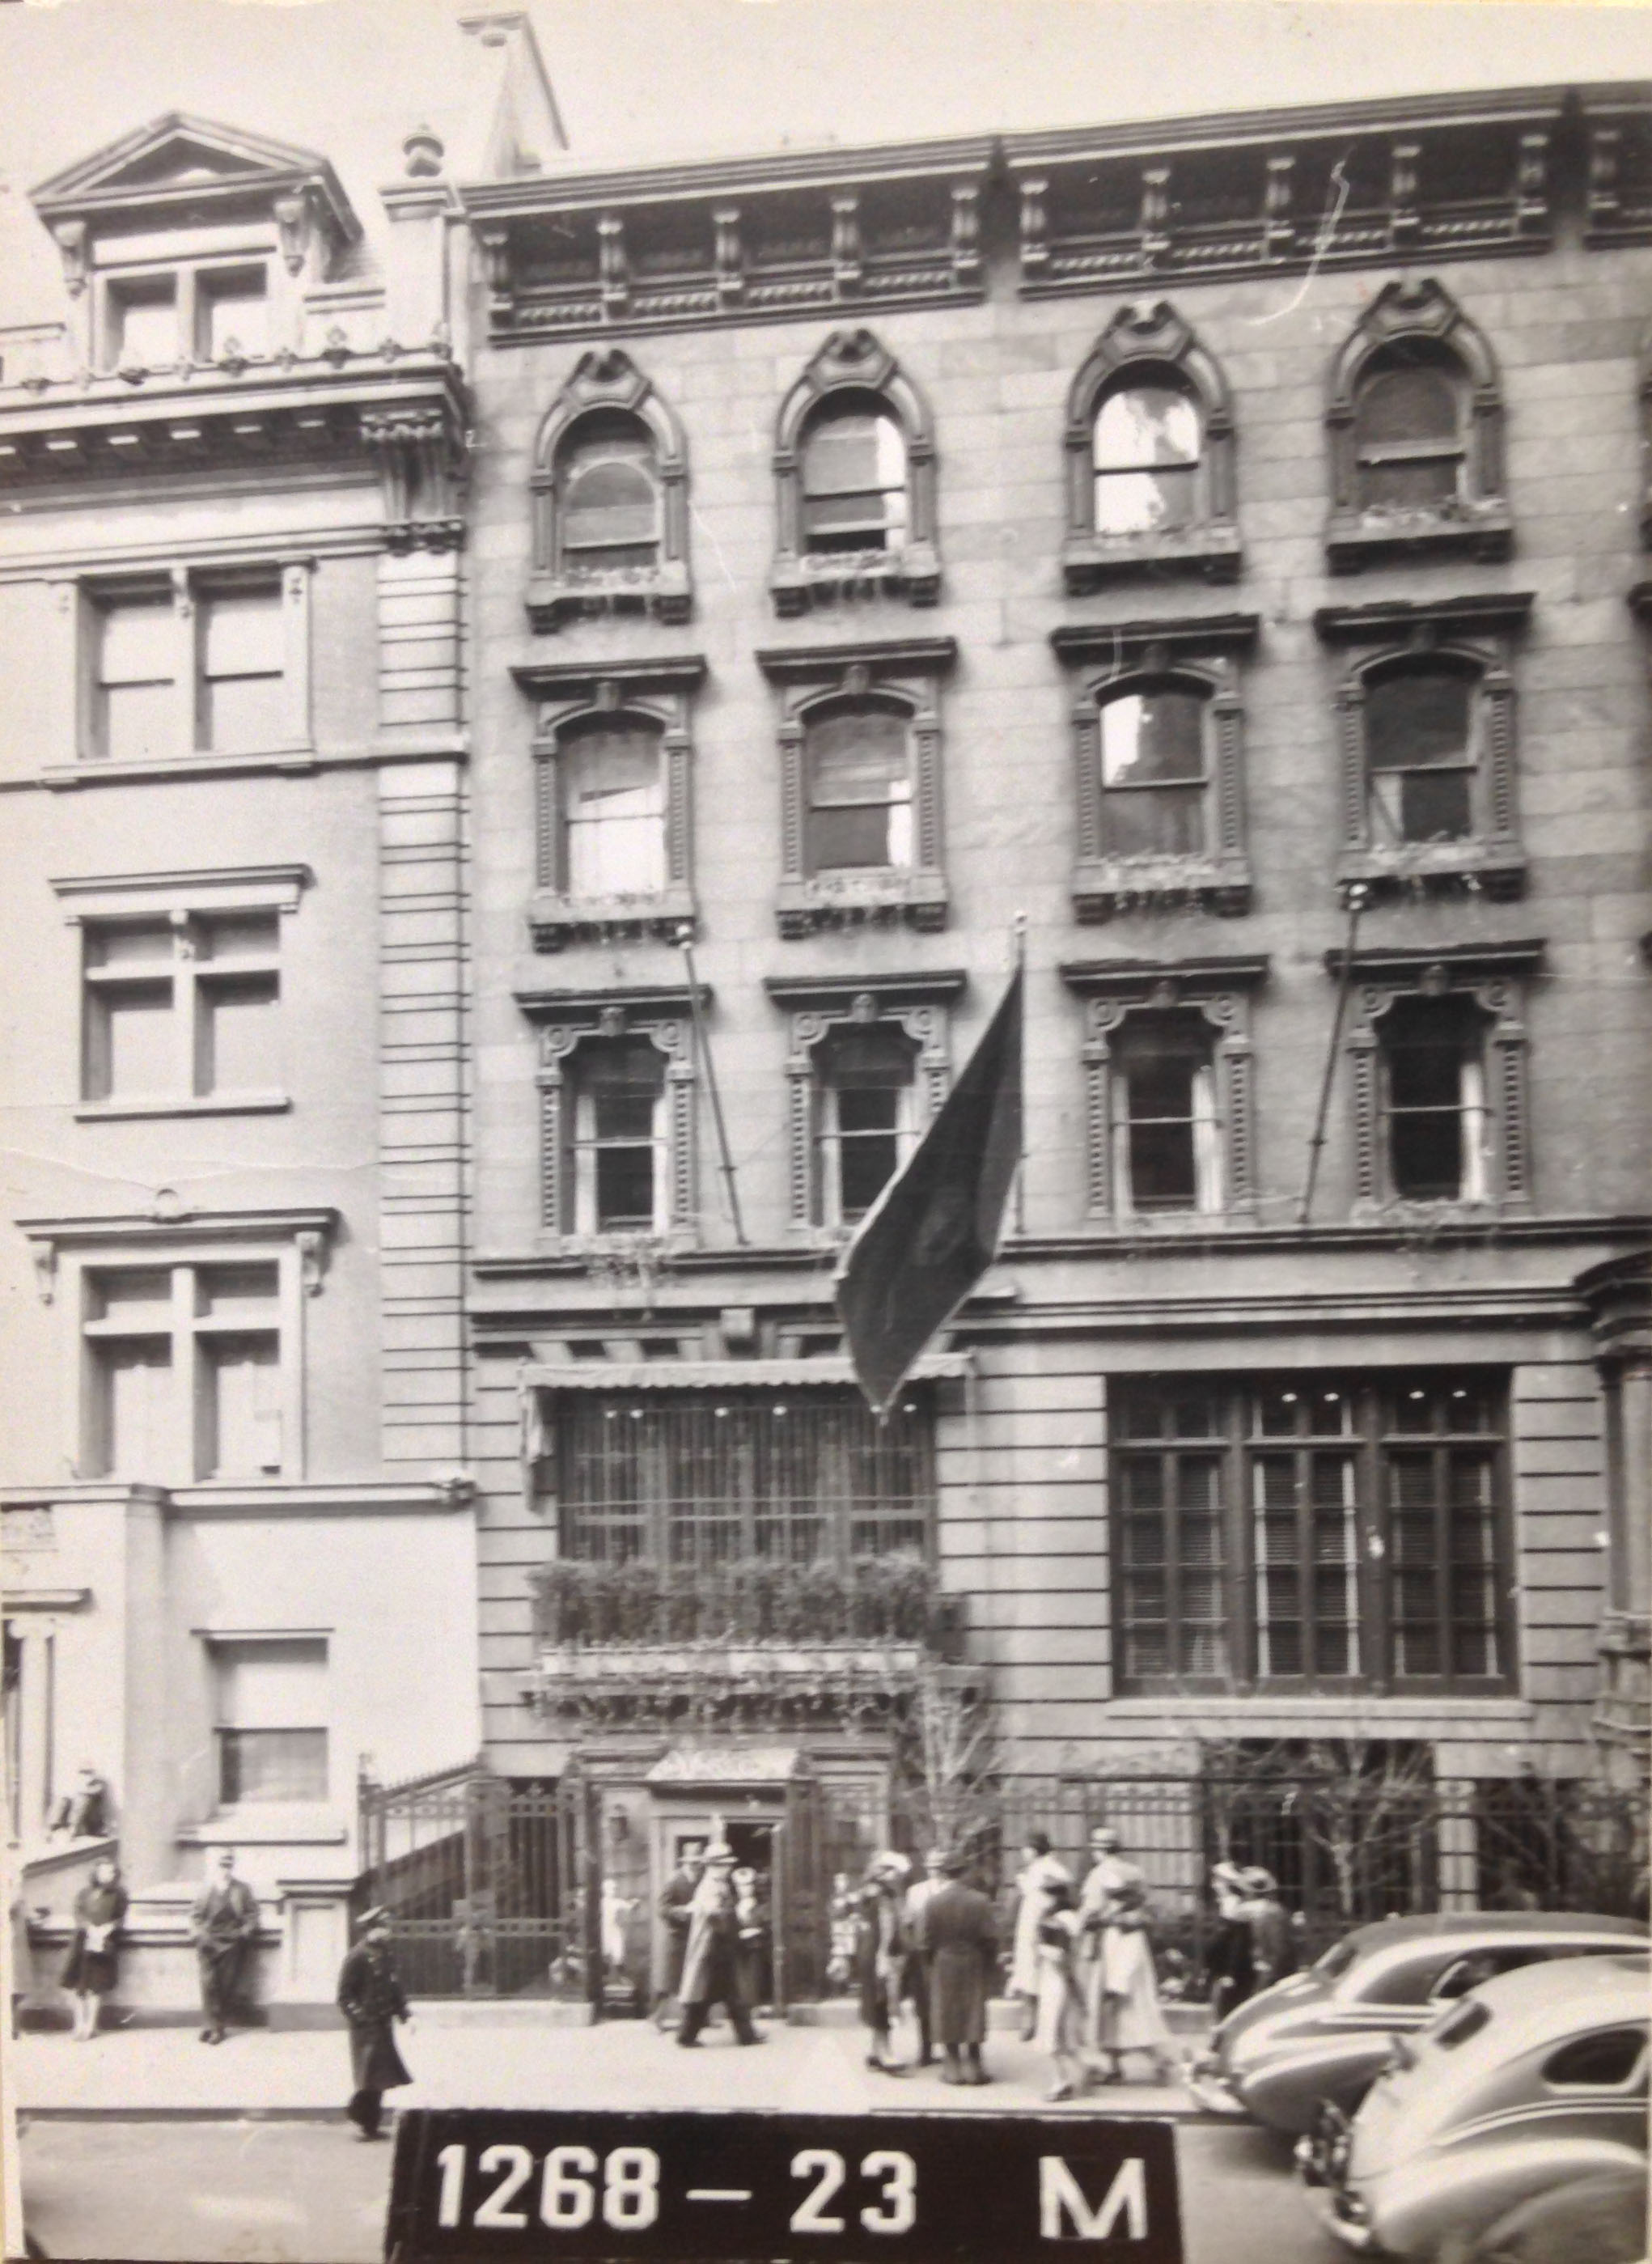 21 W. 52nd St., Manhattan, 1939-1941. Department of Finance collection, NYC Municipal Archives.